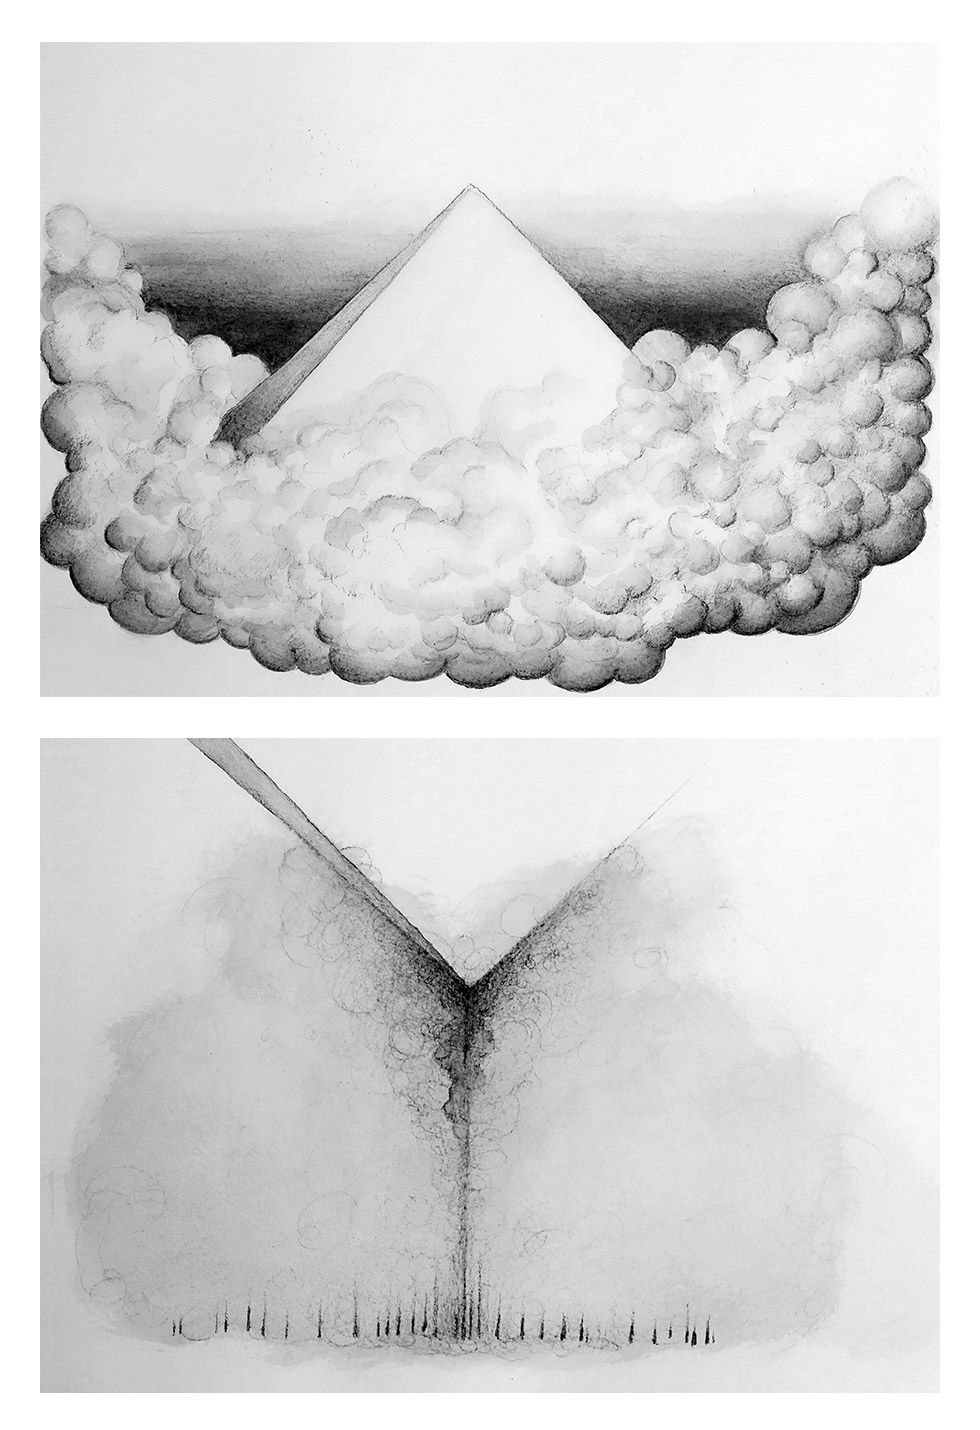 2 Drawings by Sabina Nore